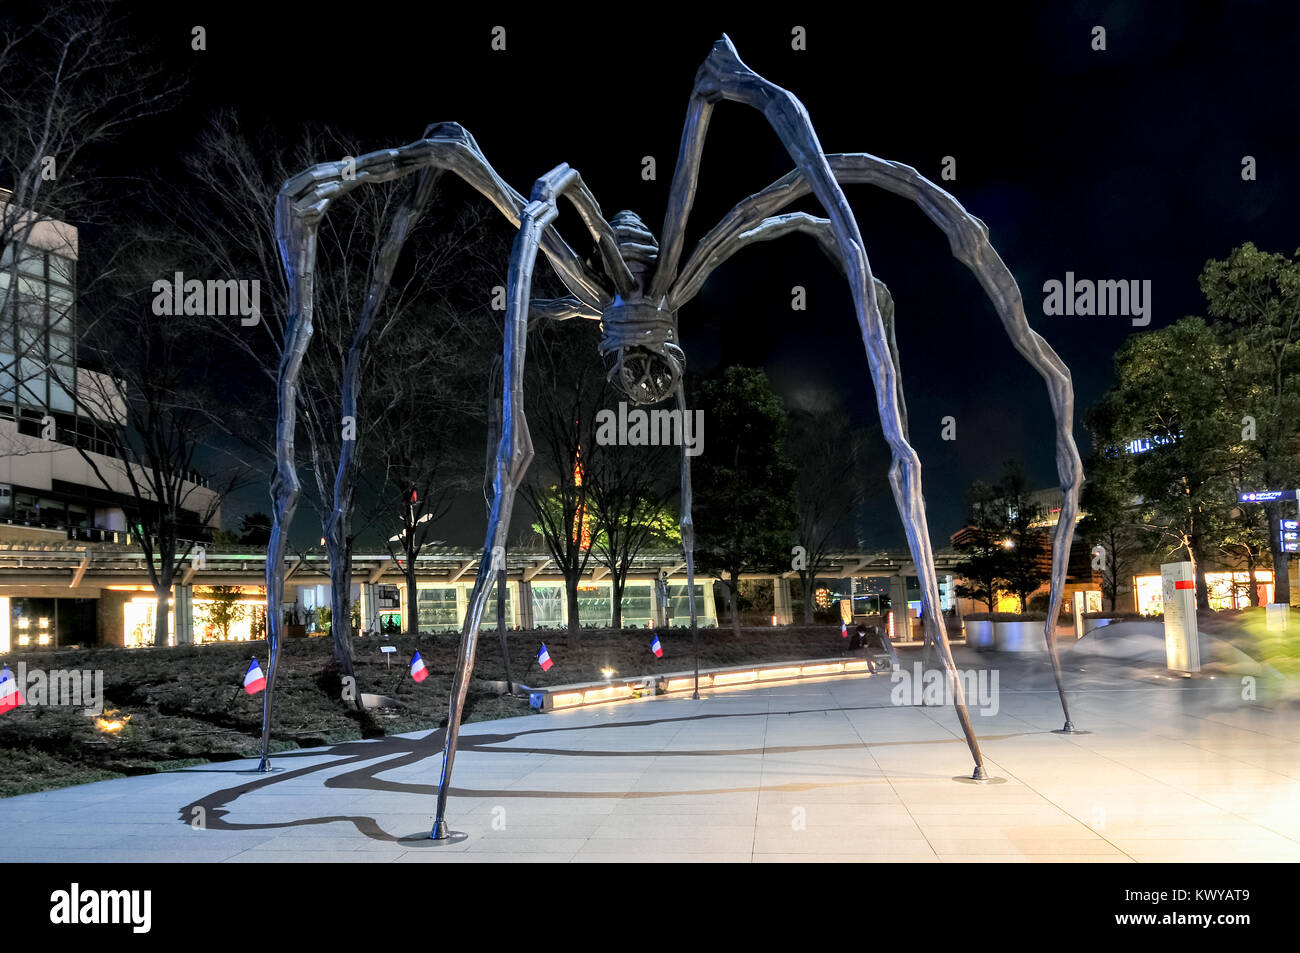 Tokyo, Japan - March 15, 2009: Maman - a spider sculpture by Louise Bourgeois, situated at the base of Mori Tower Stock Photo